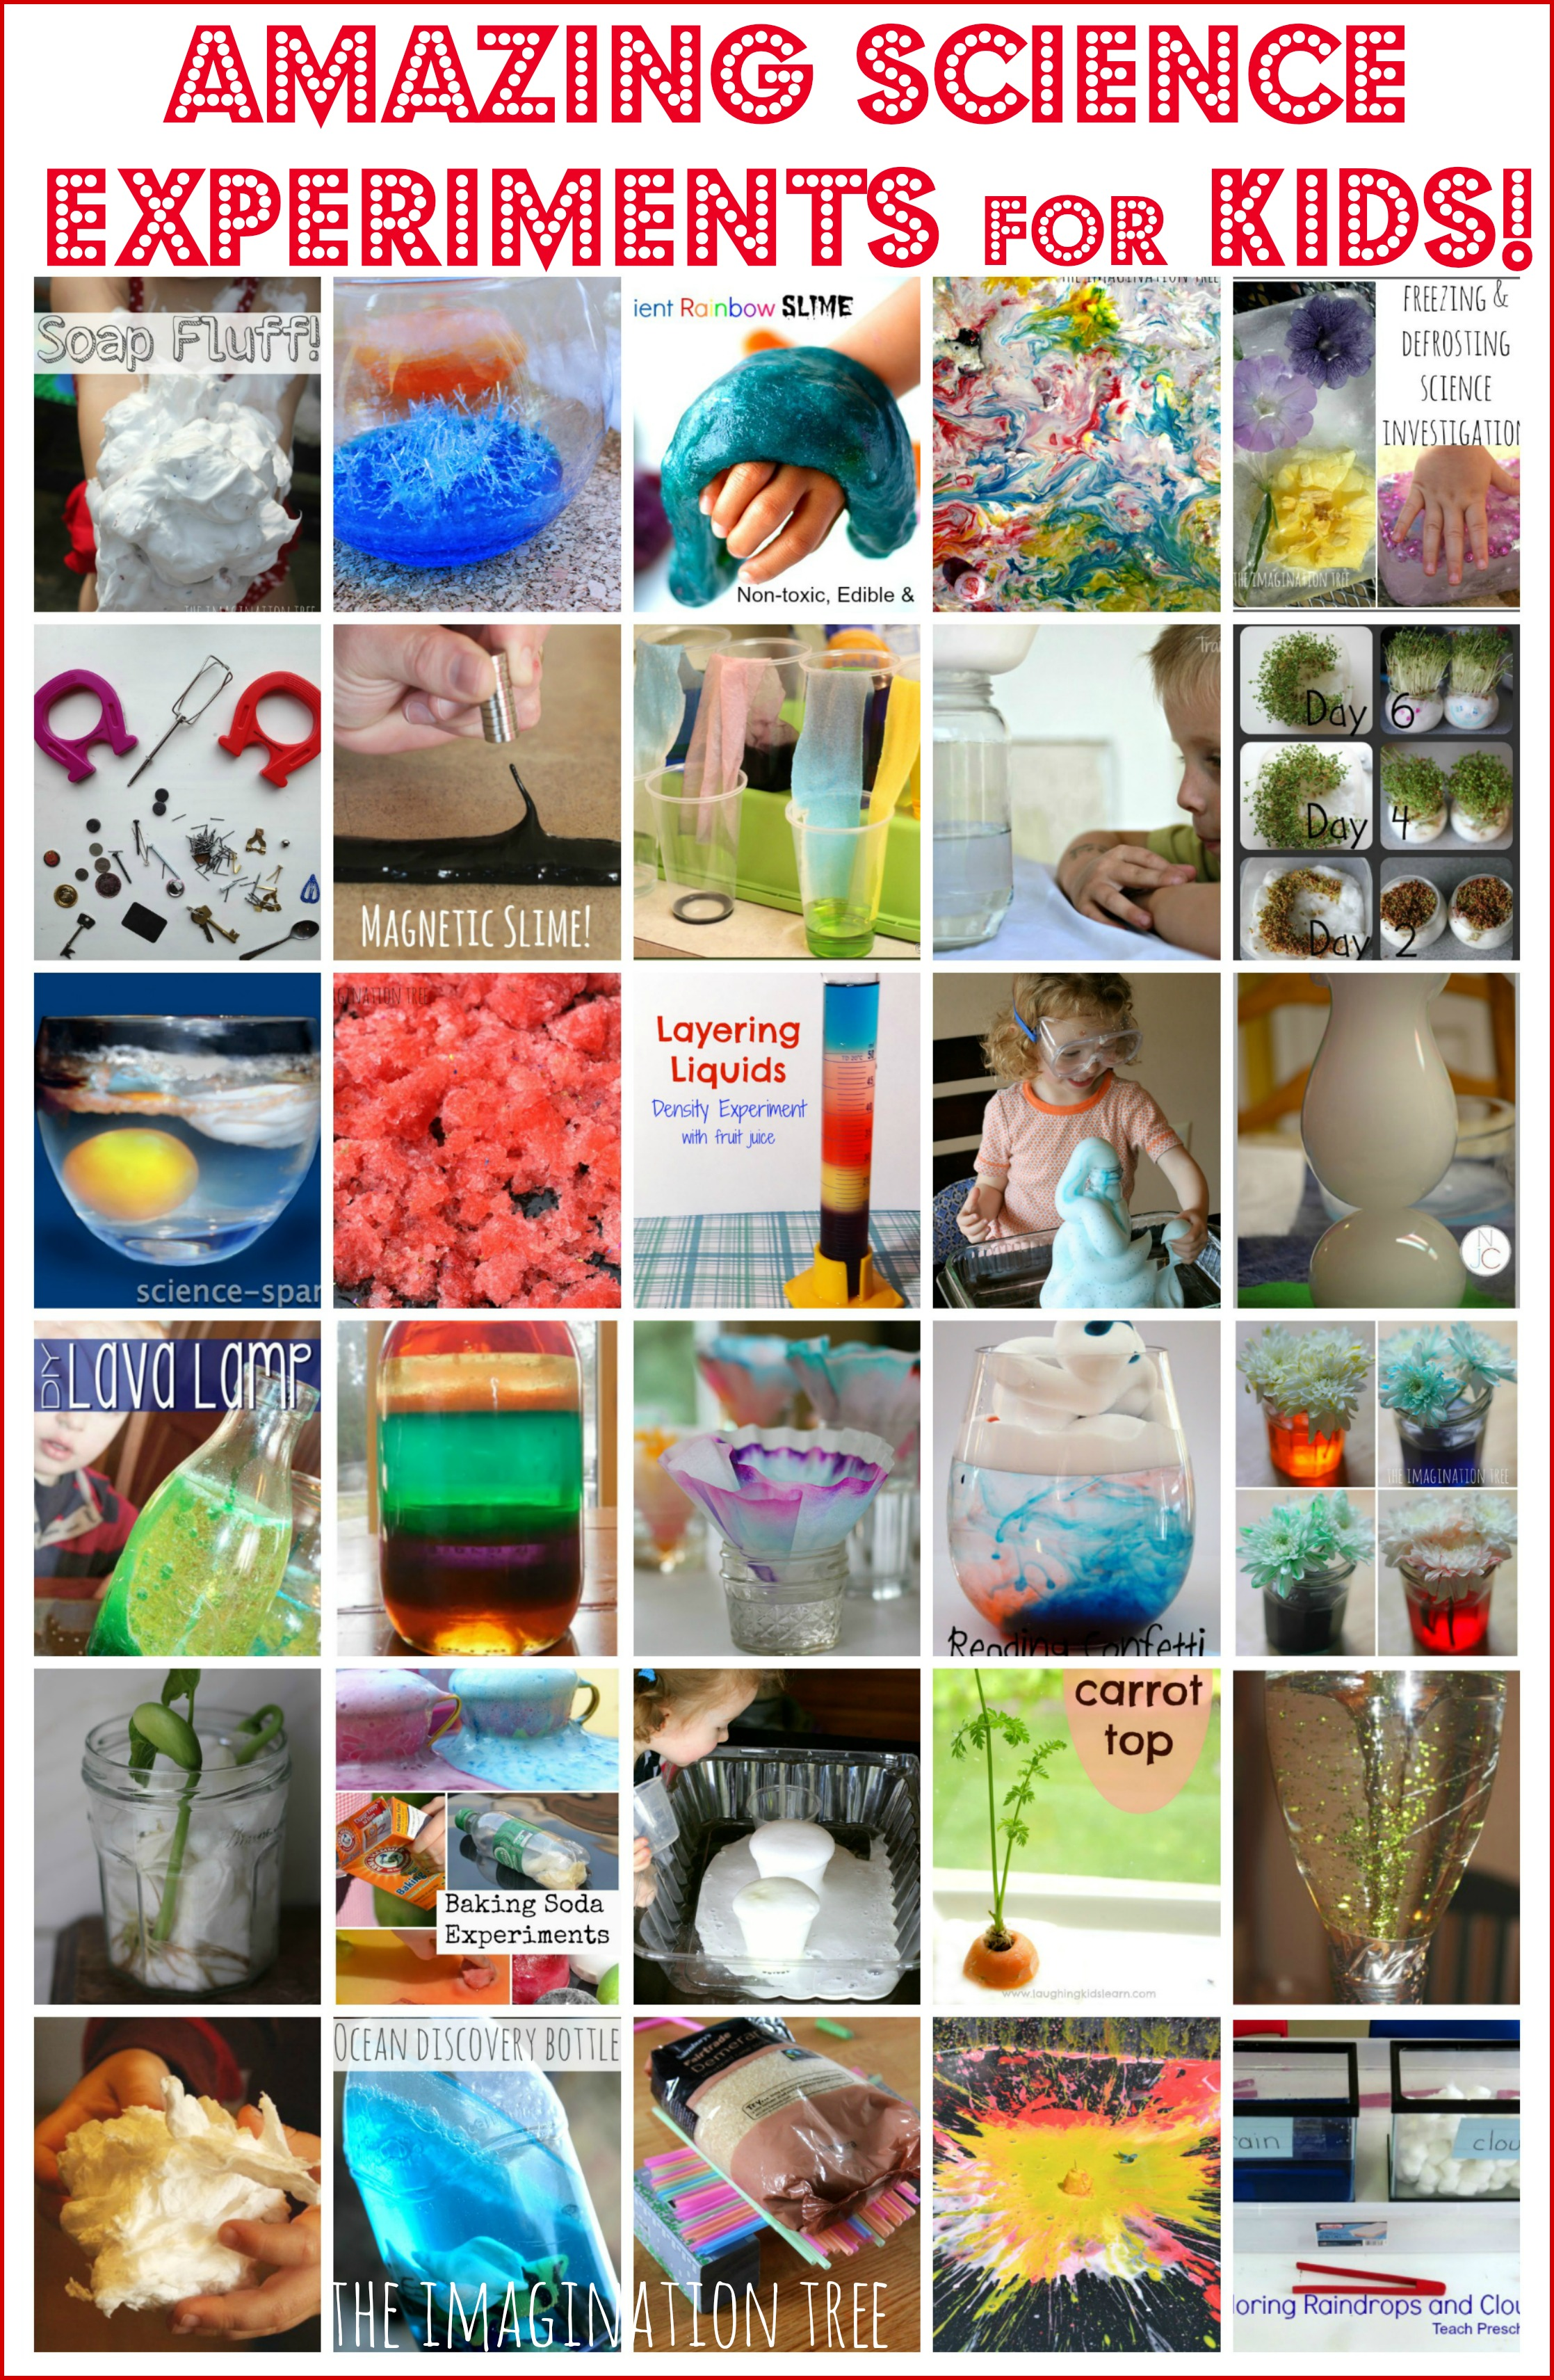 Uncategorized cool science projects for kids science fair project ideas for kids - 30 Amazing Science Experiments For Kids